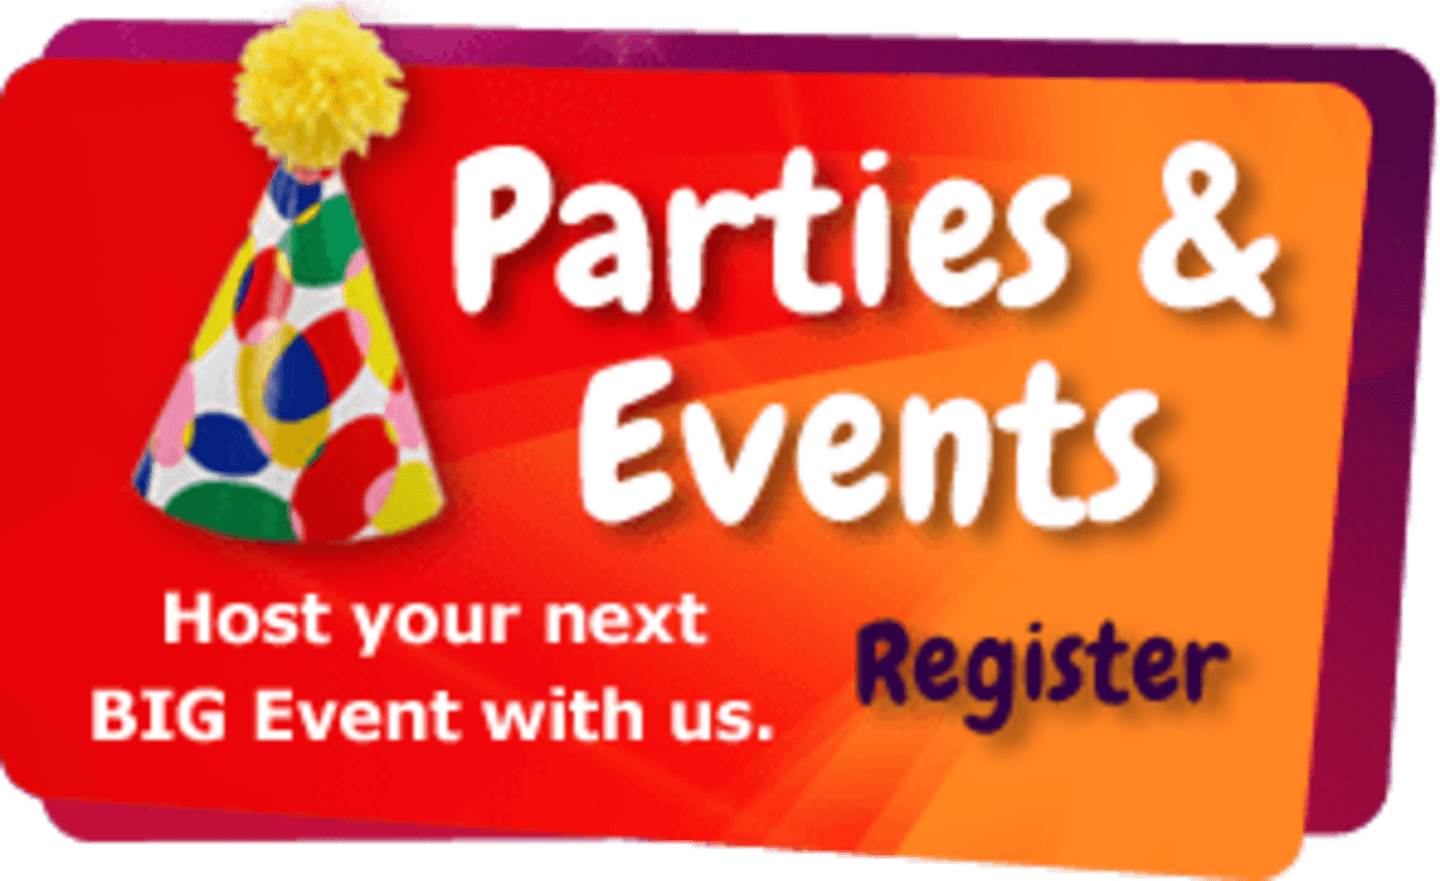 Parties & Events. Host your next BIG event with us. Register